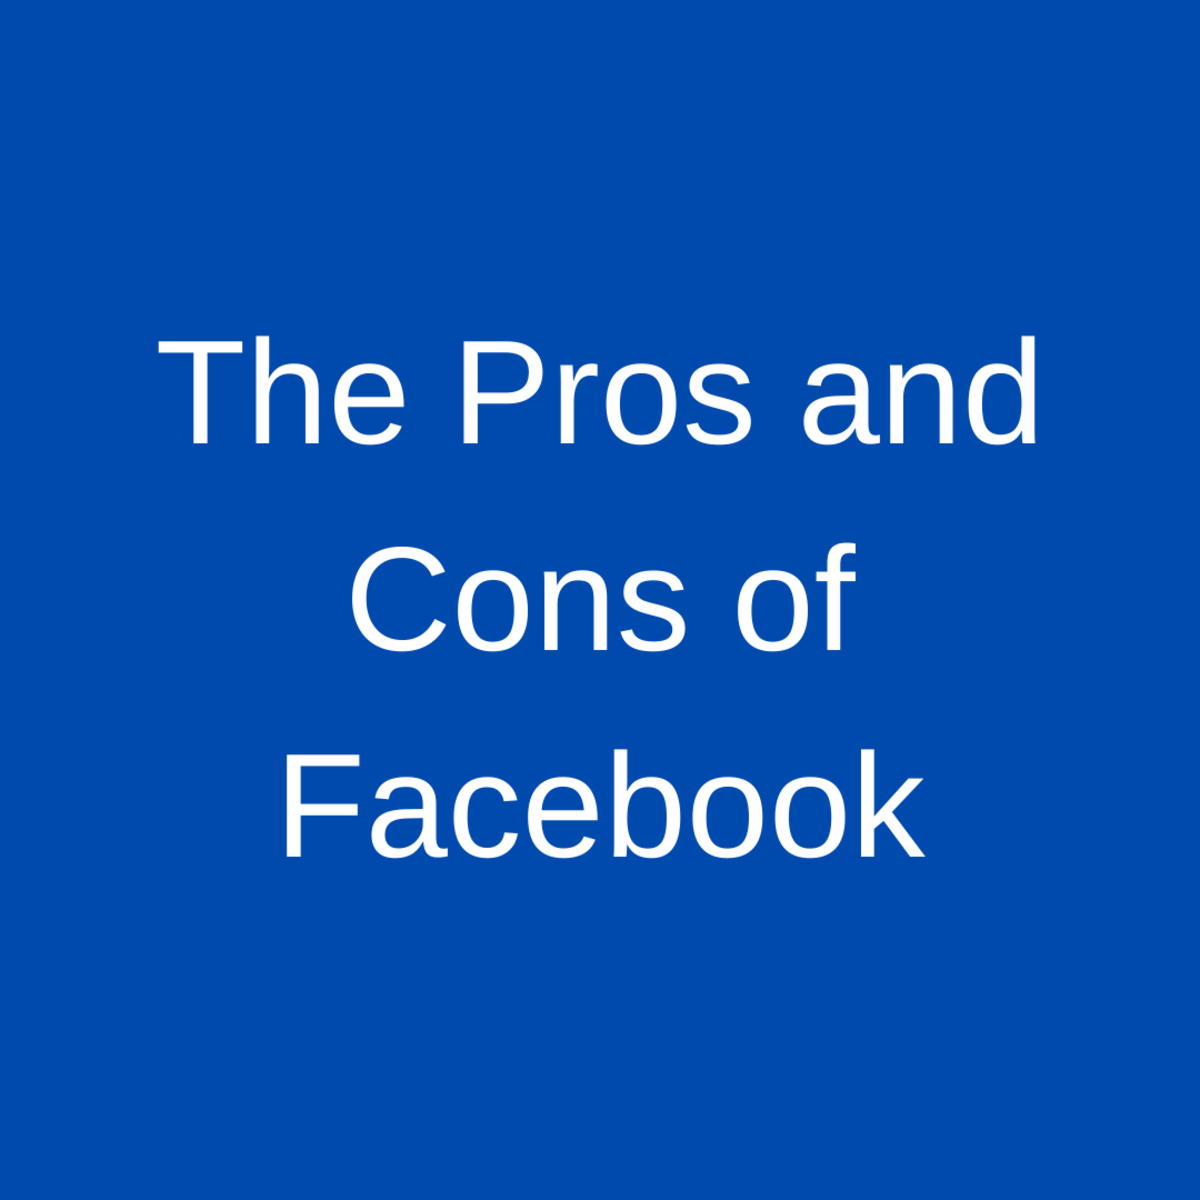 There are many pros and cons to using a social media platform like Facebook